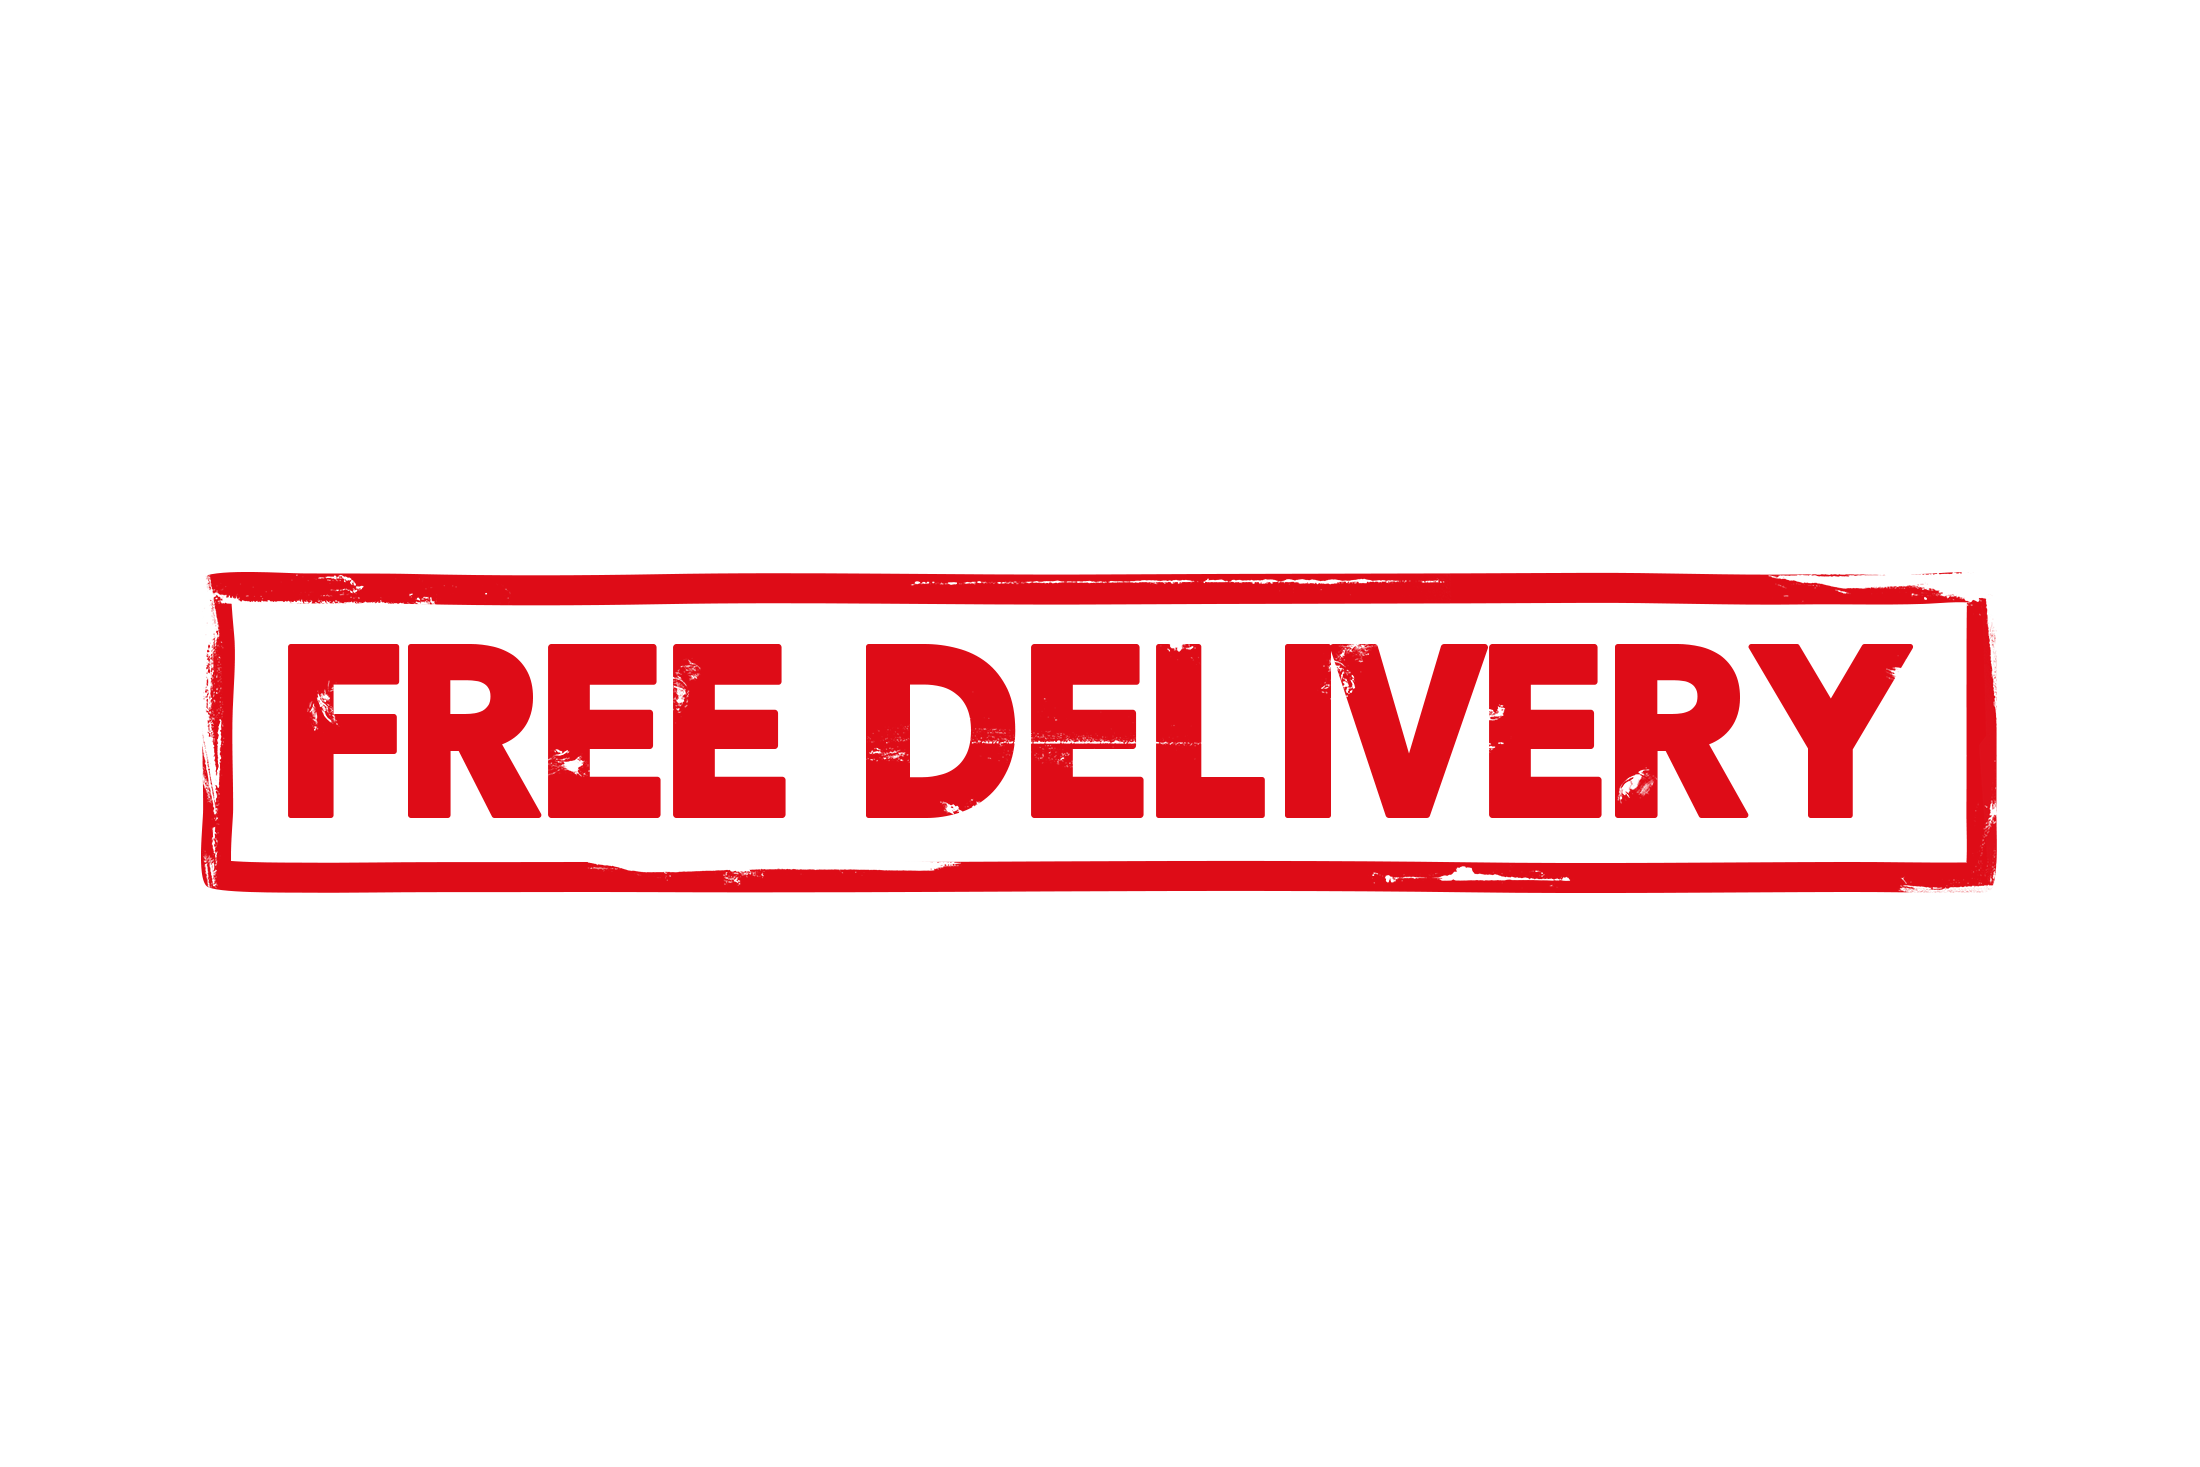 Free delivery stamp PSD